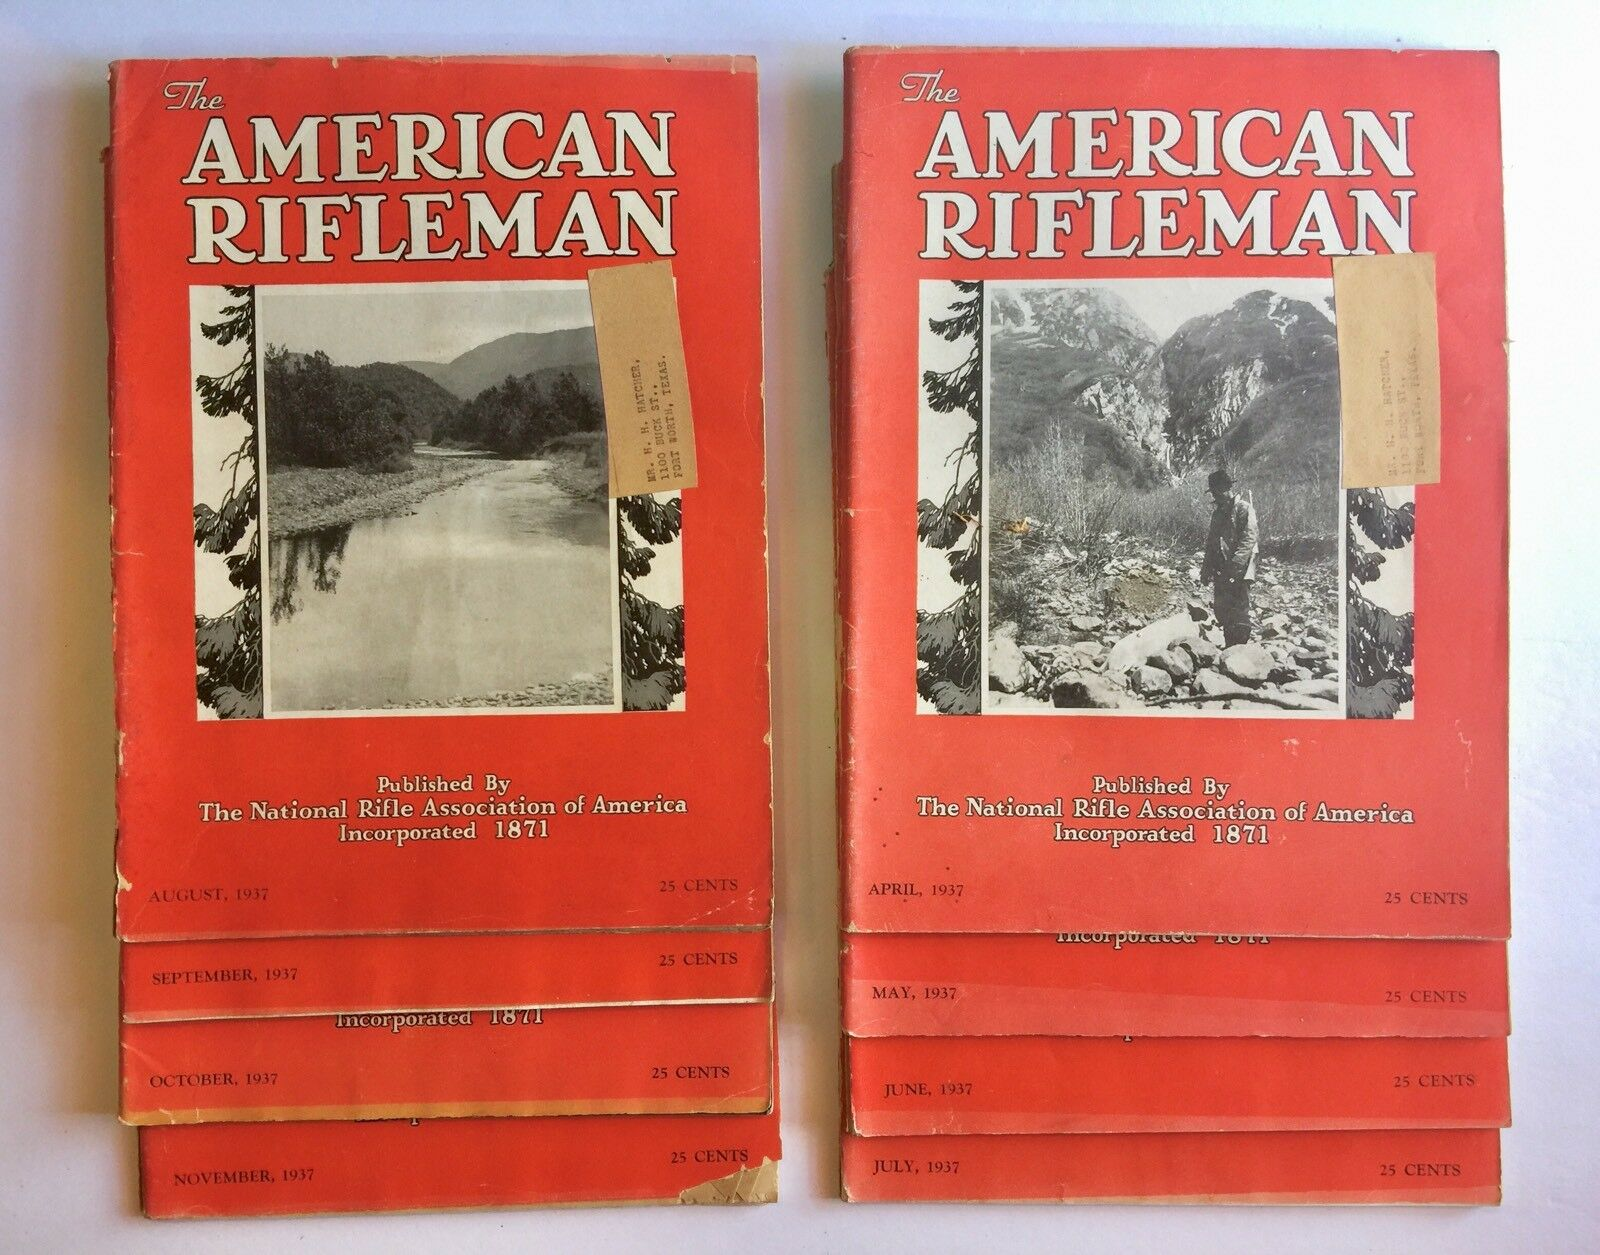 LOT of VINTAGE 1937 THE AMERICAN RIFLEMAN MAGAZINES 8 Issues